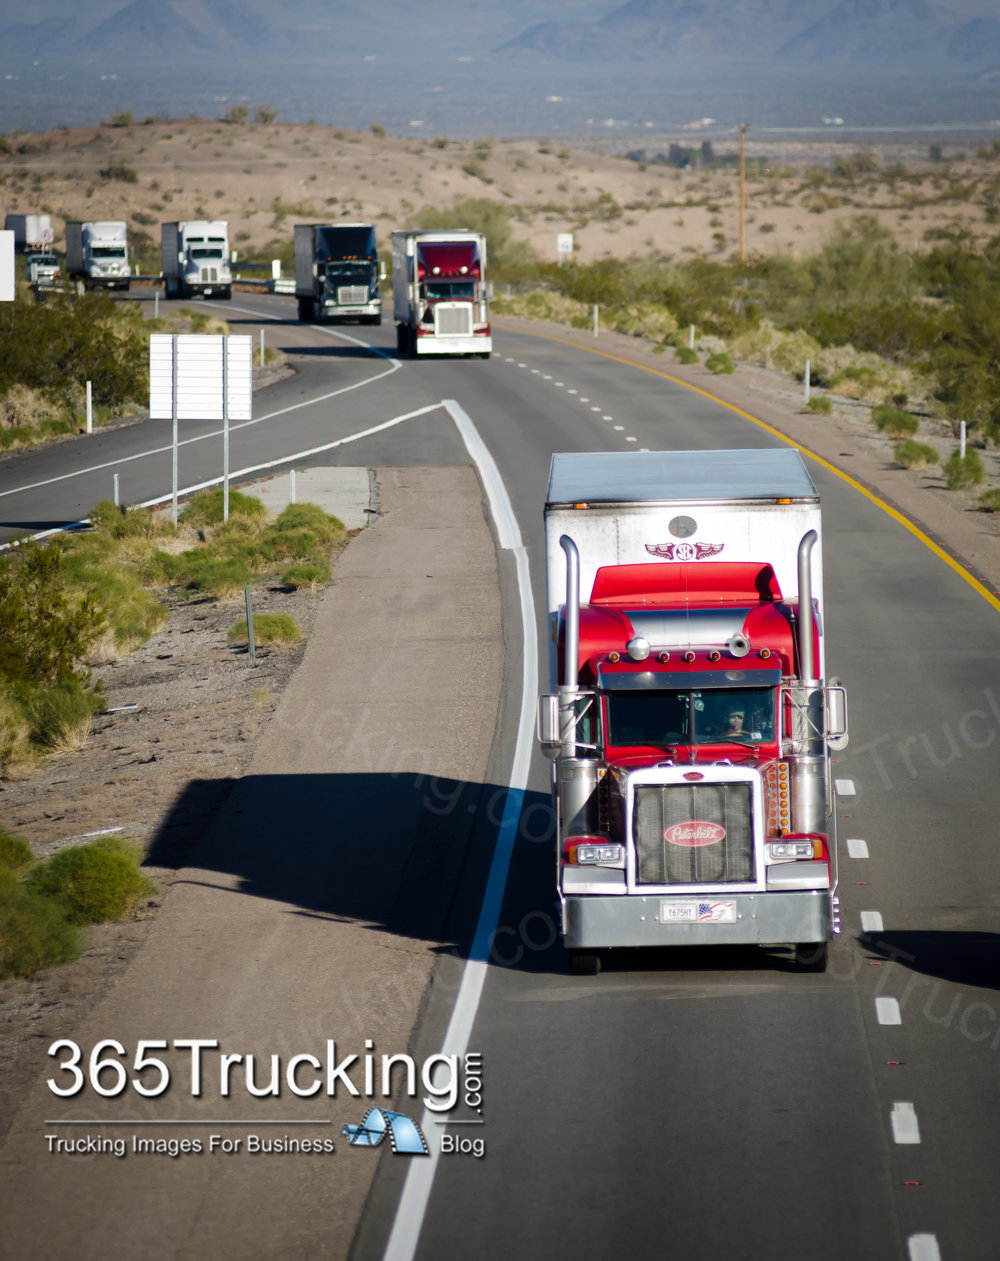 Click  HERE  to see more truck images from TruckStockImages.com